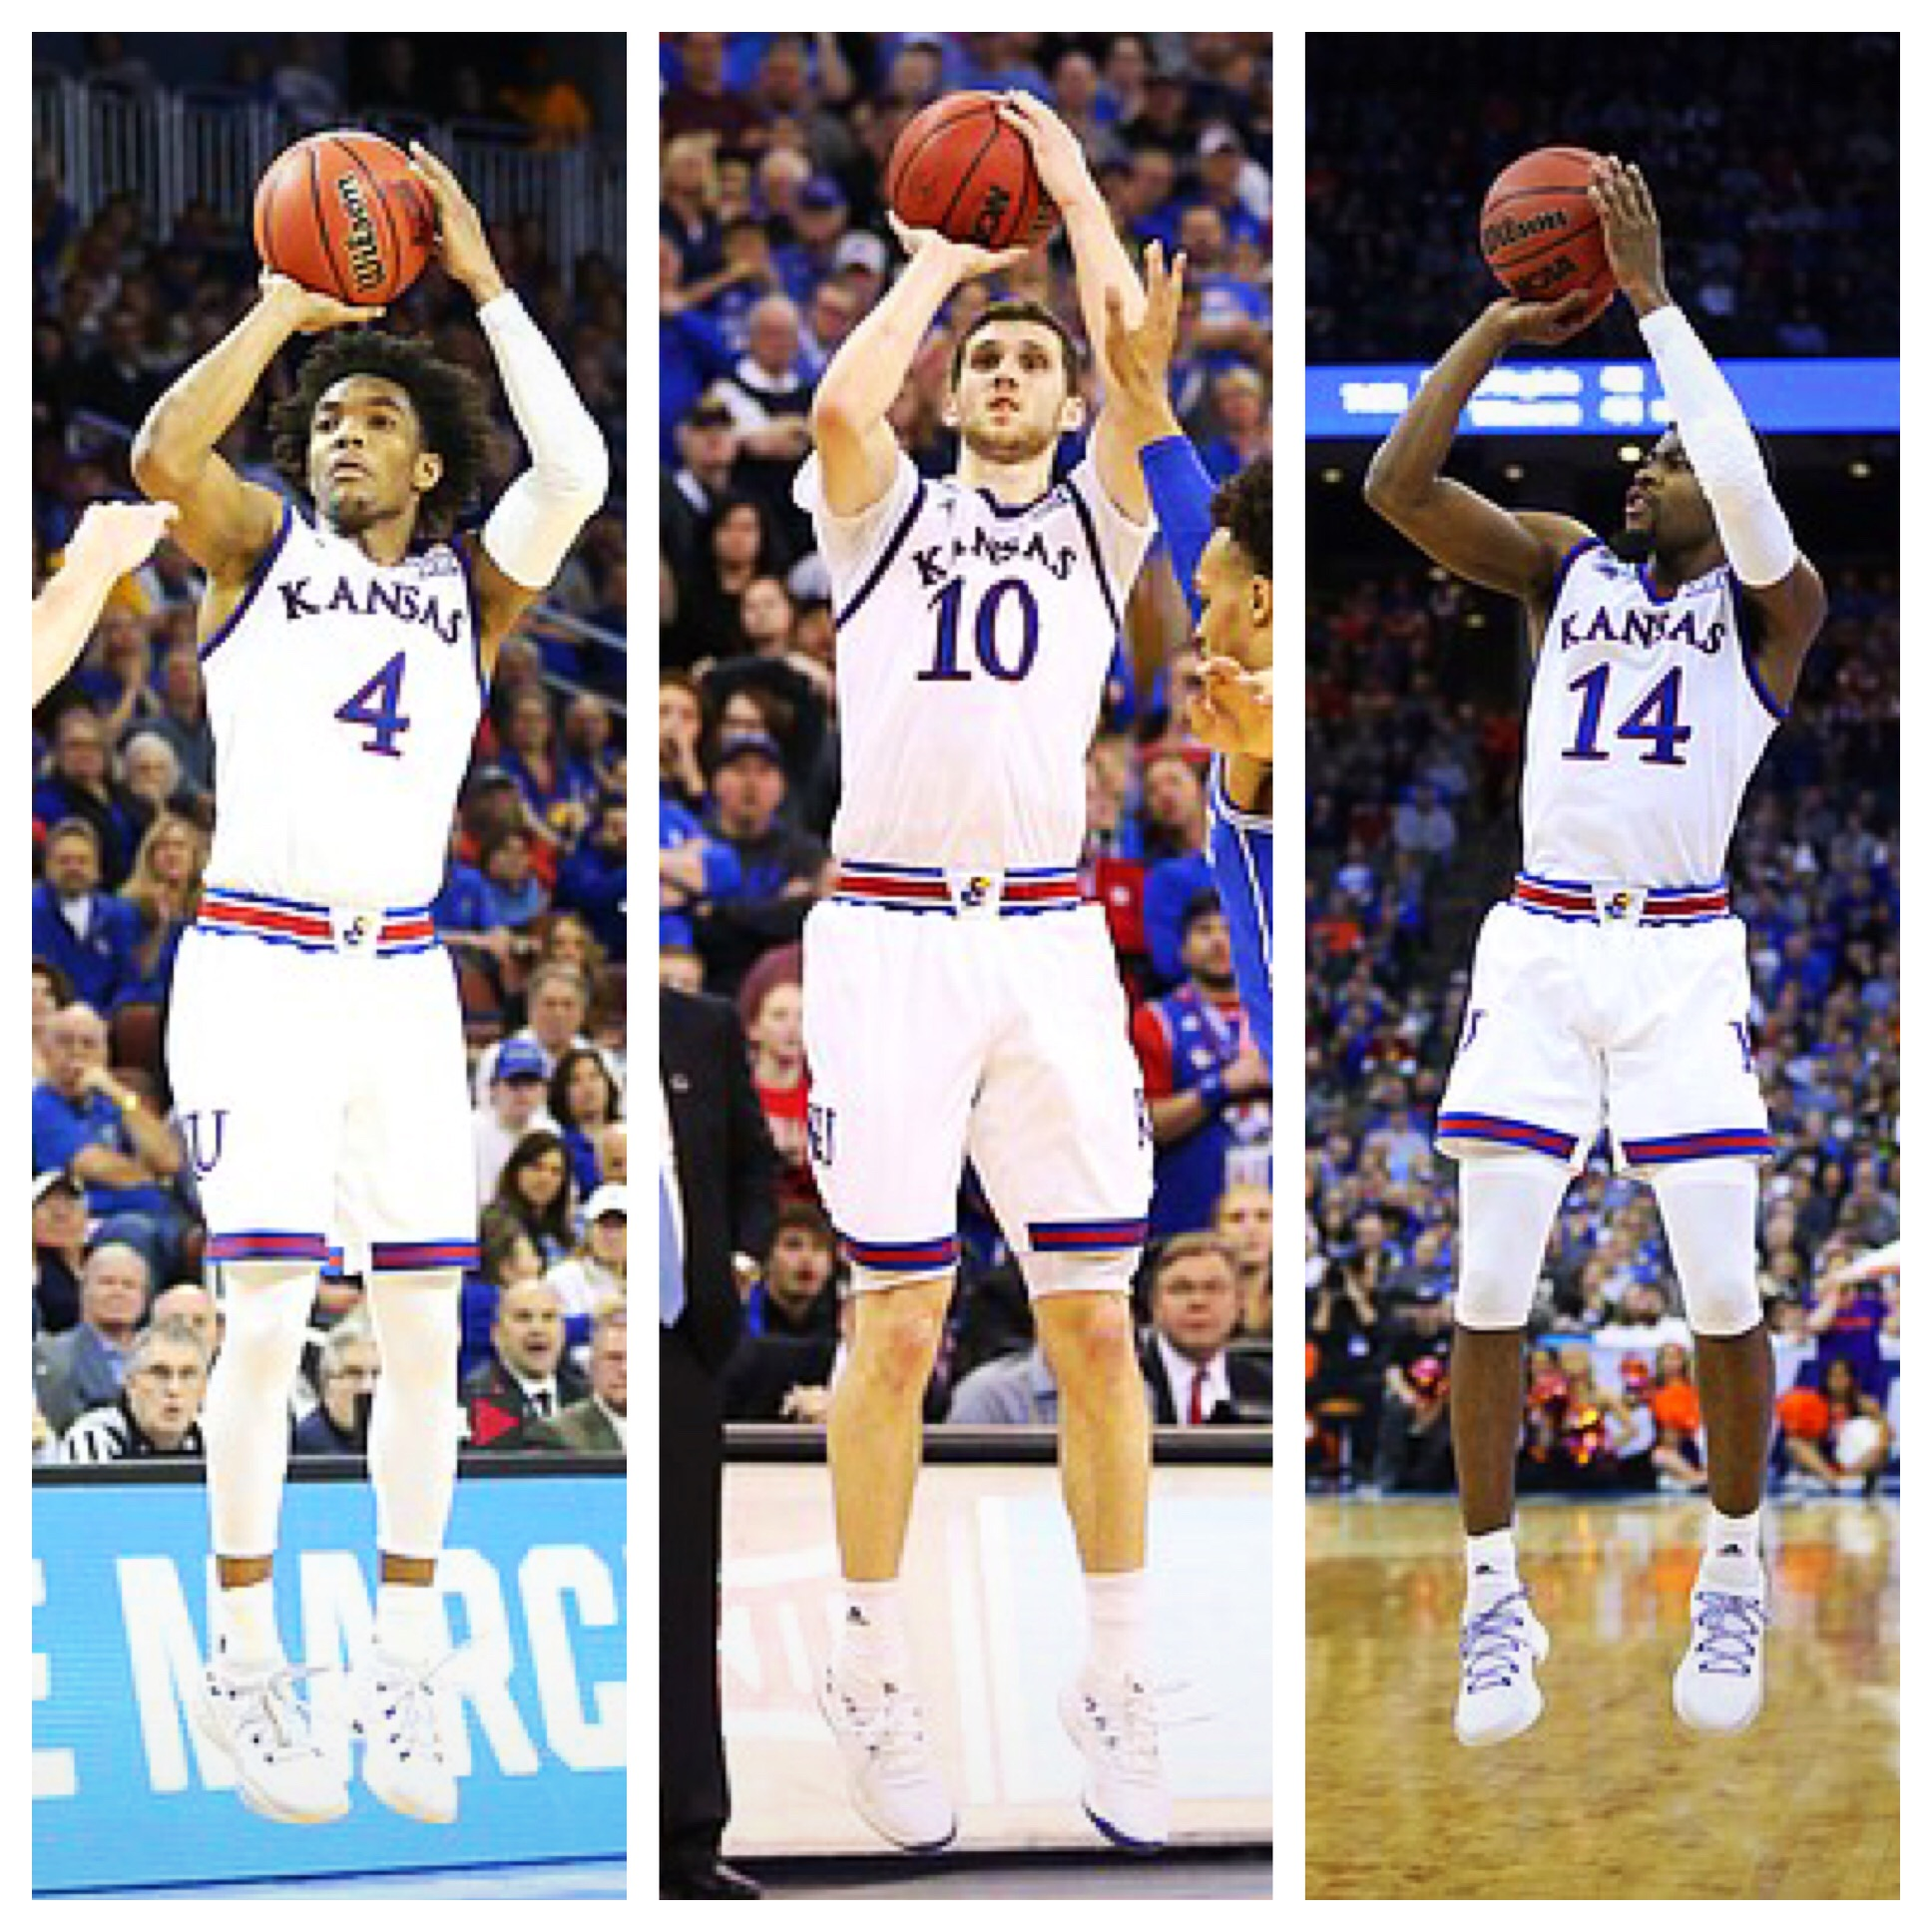 Wanted: 3-point Shooters For KU Team